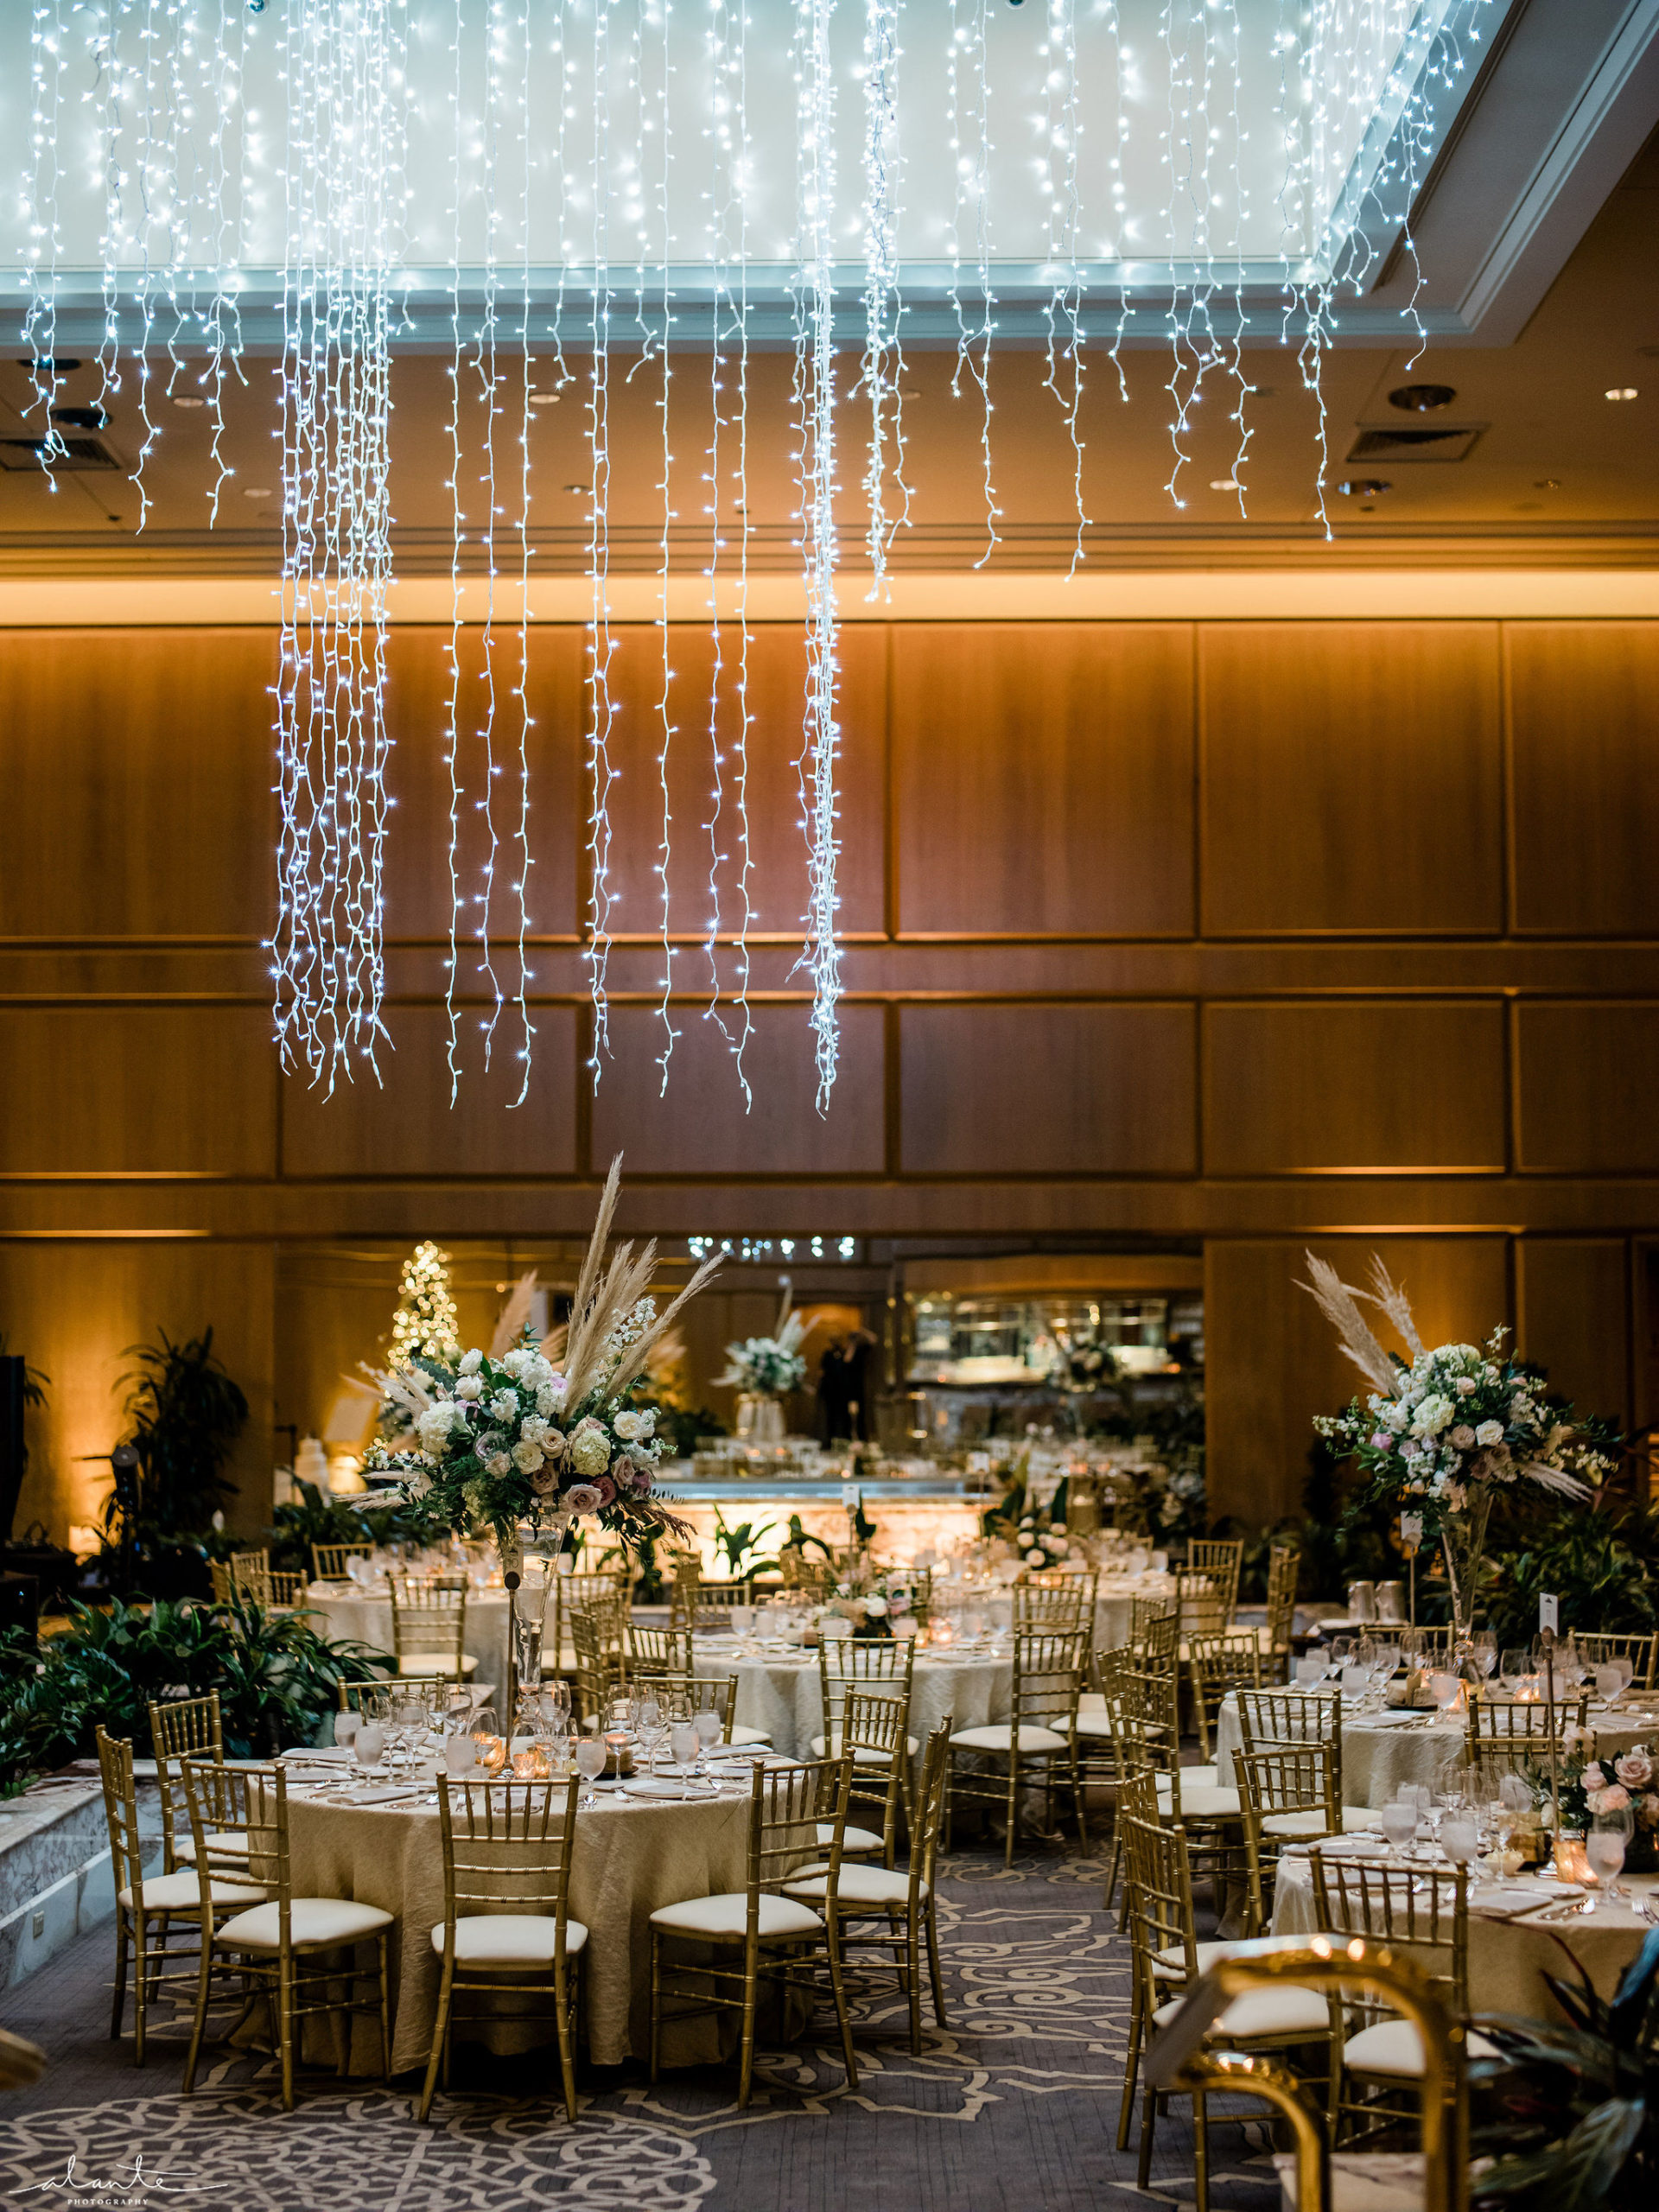 New Years Eve wedding reception, round tables with gold charivari chairs and tall pampas grass centerpieces under a holiday light chandelier.